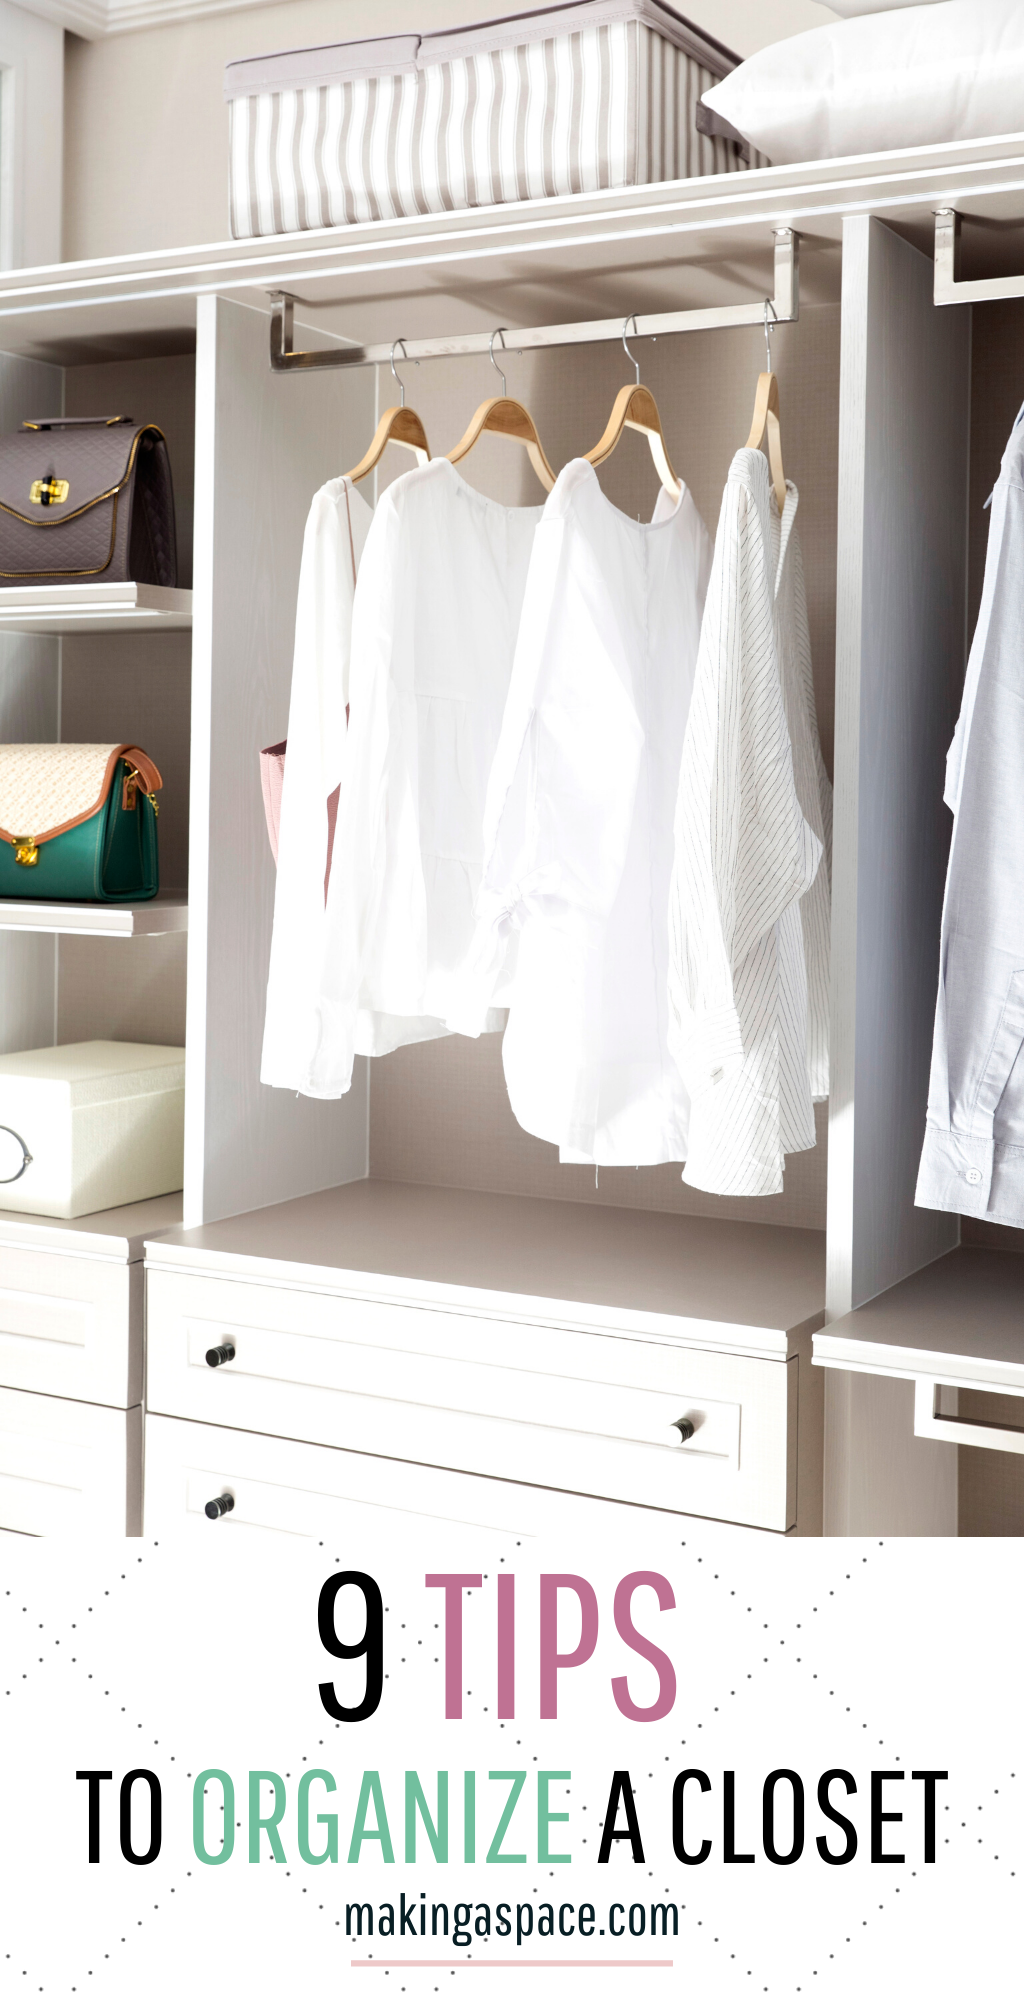 Closet Storage Ideas to Organize